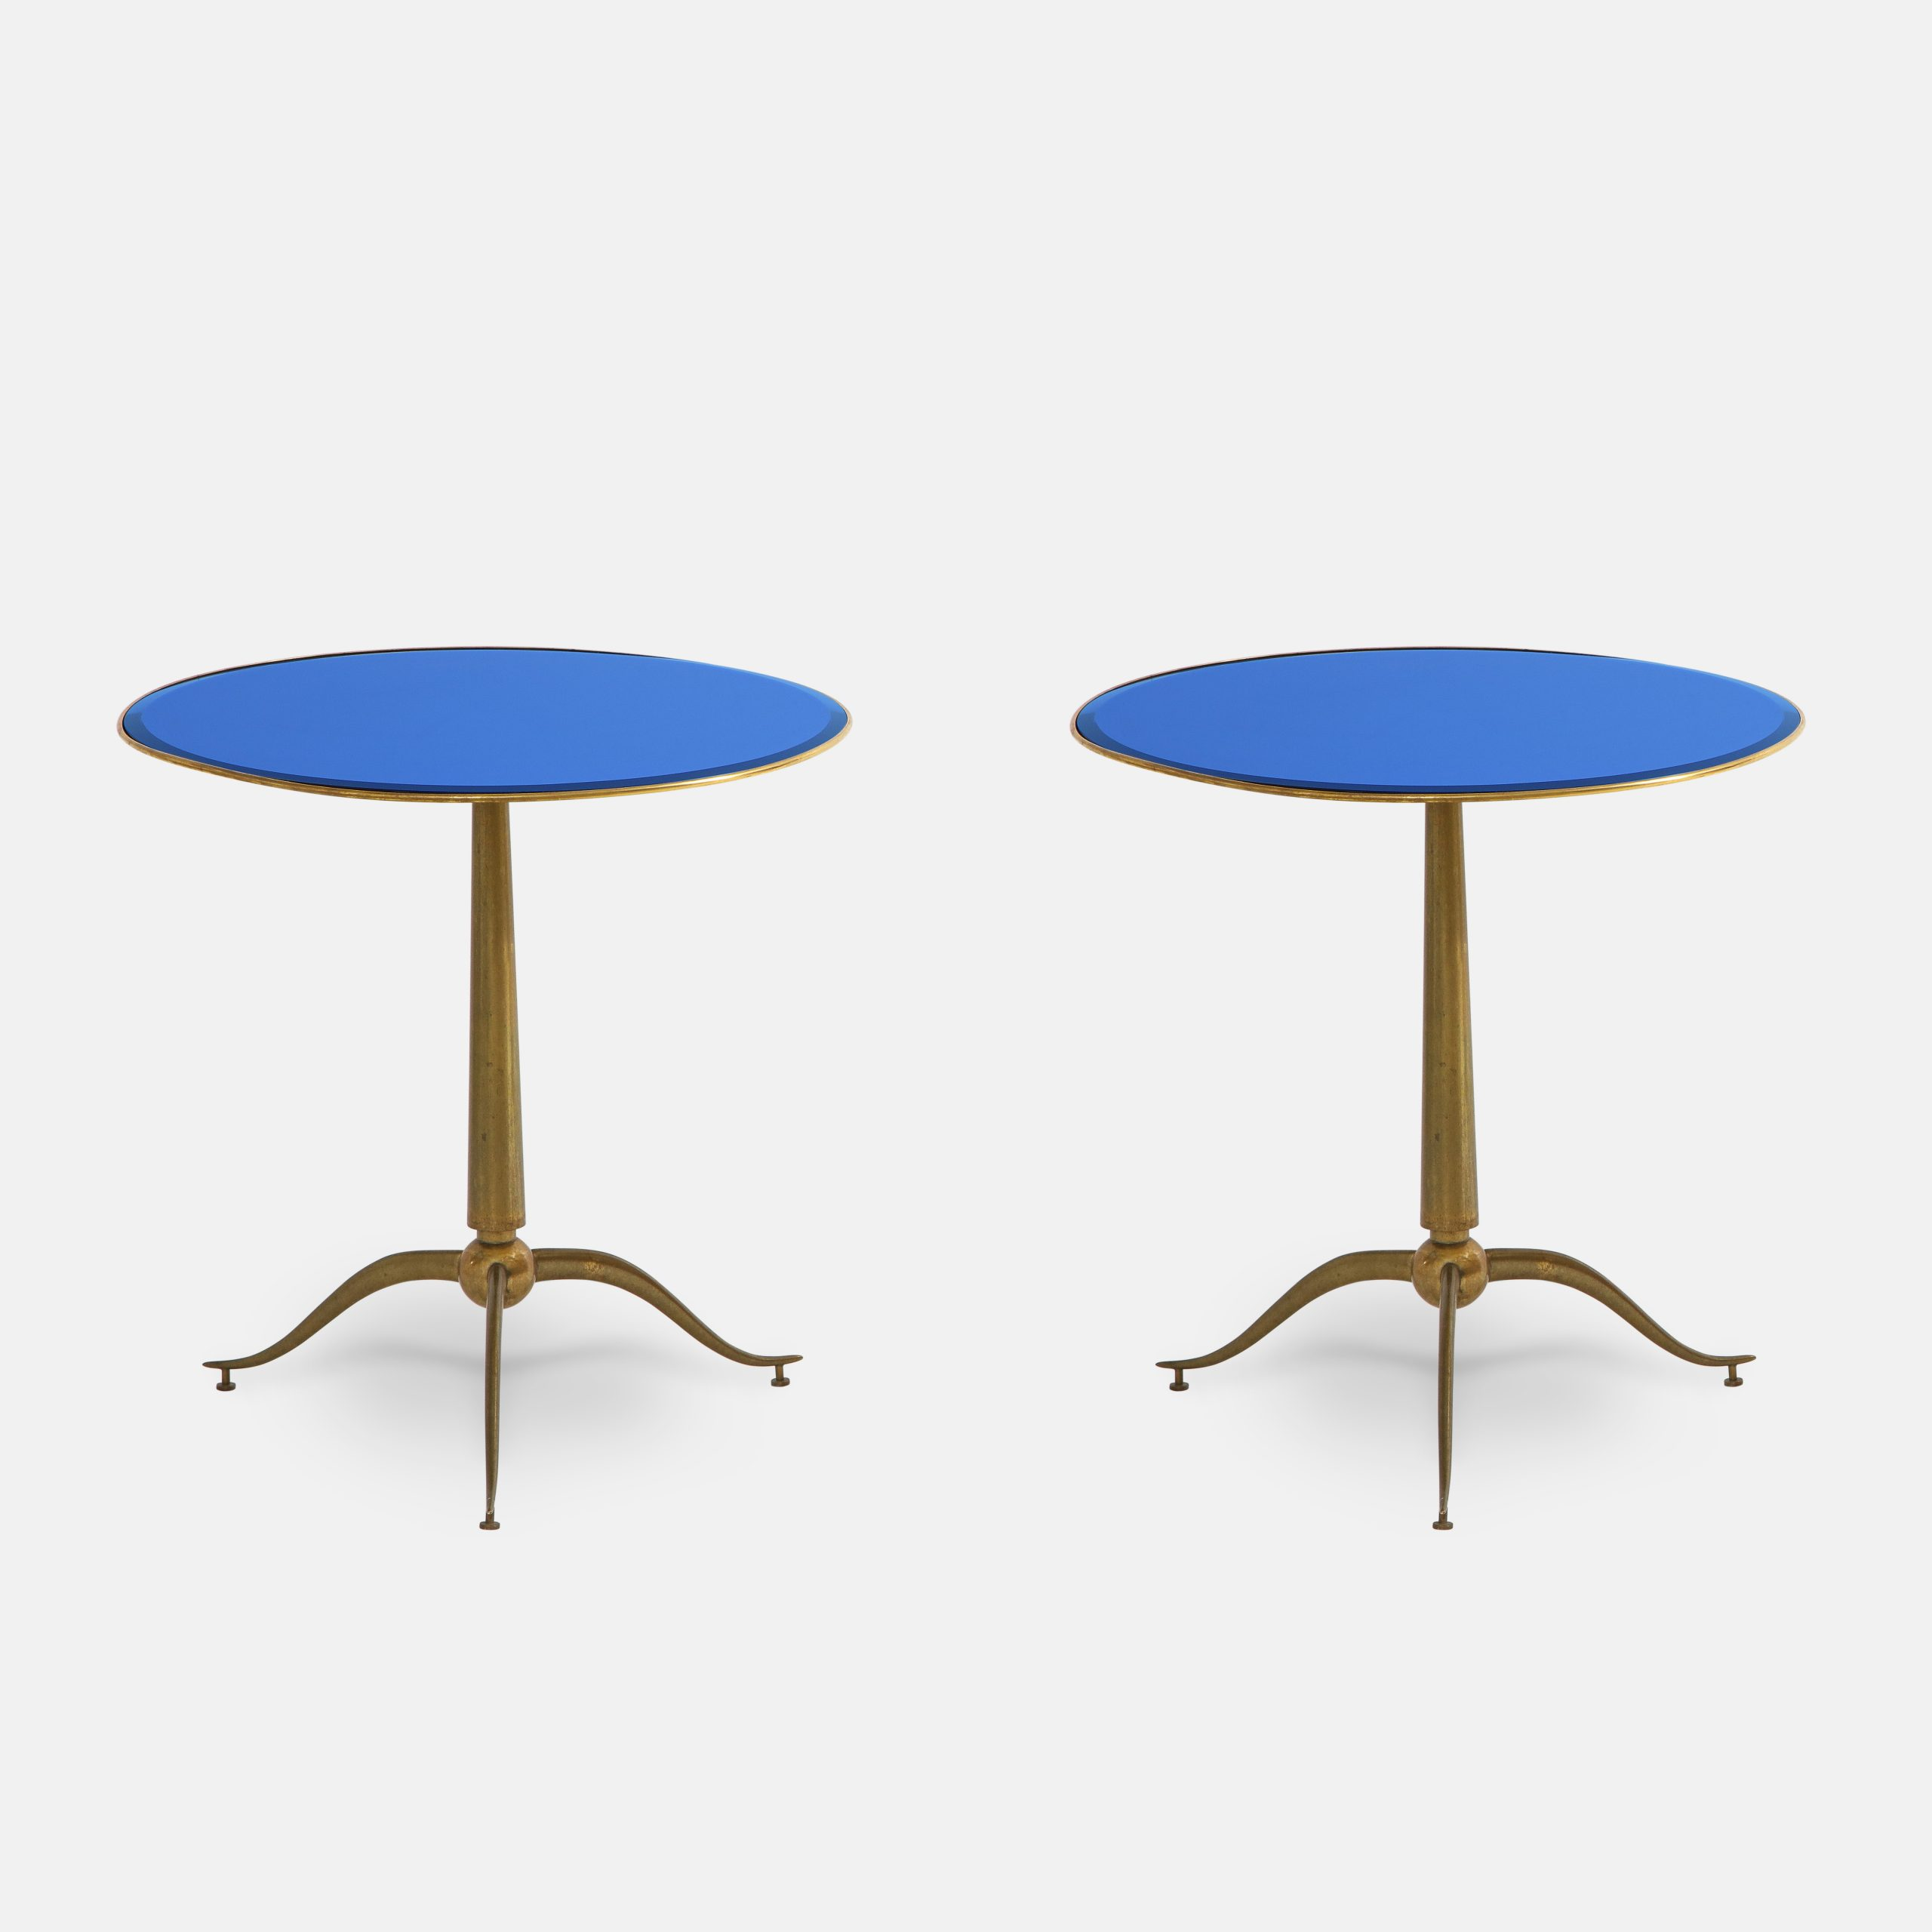 Rare Pair of Side Tables by Osvaldo Borsani for Arredamenti Borsani | soyun k.